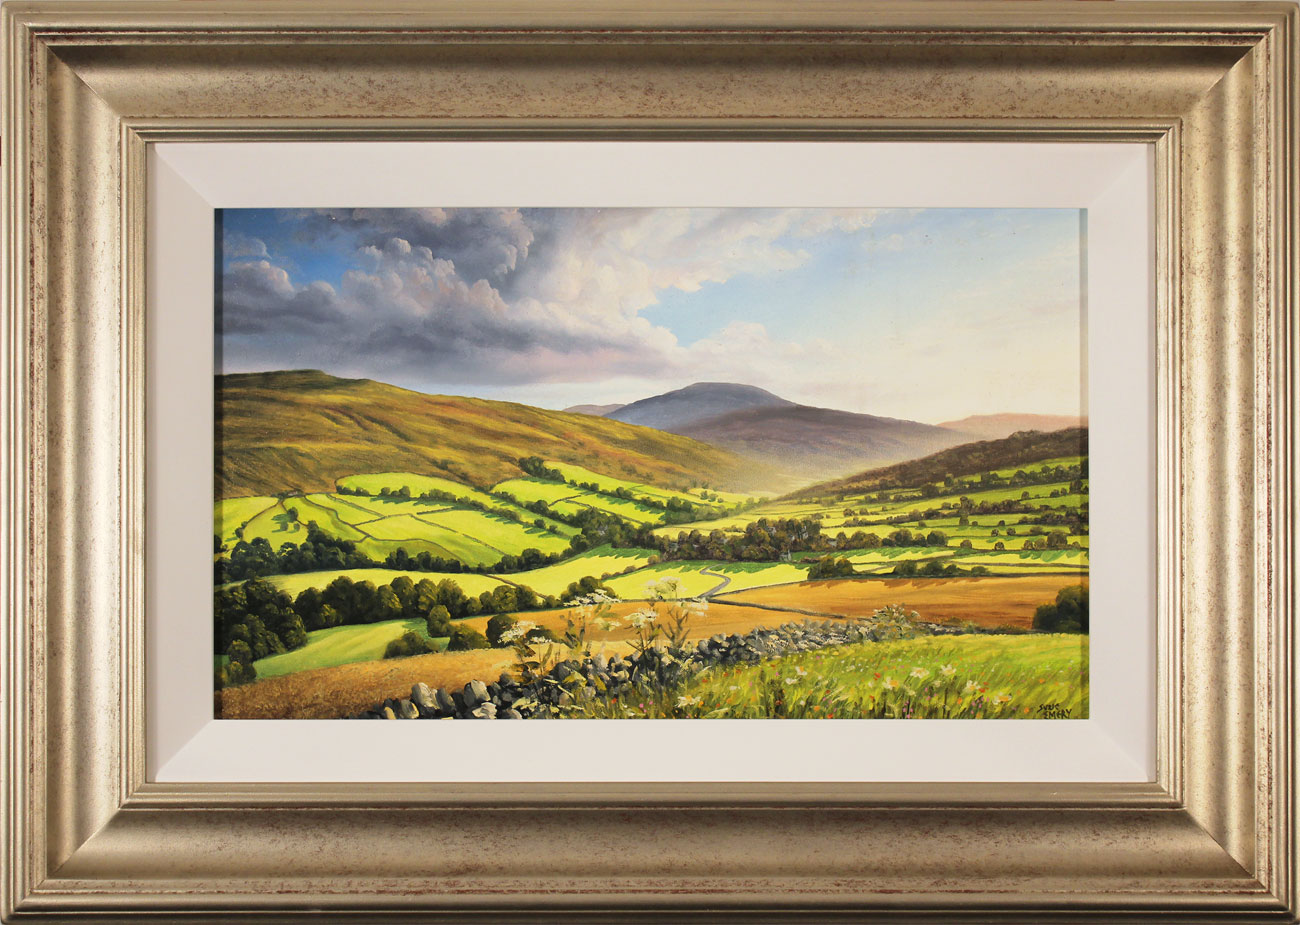 Suzie Emery, Original acrylic painting on board, Swaledale, Yorkshire. Click to enlarge